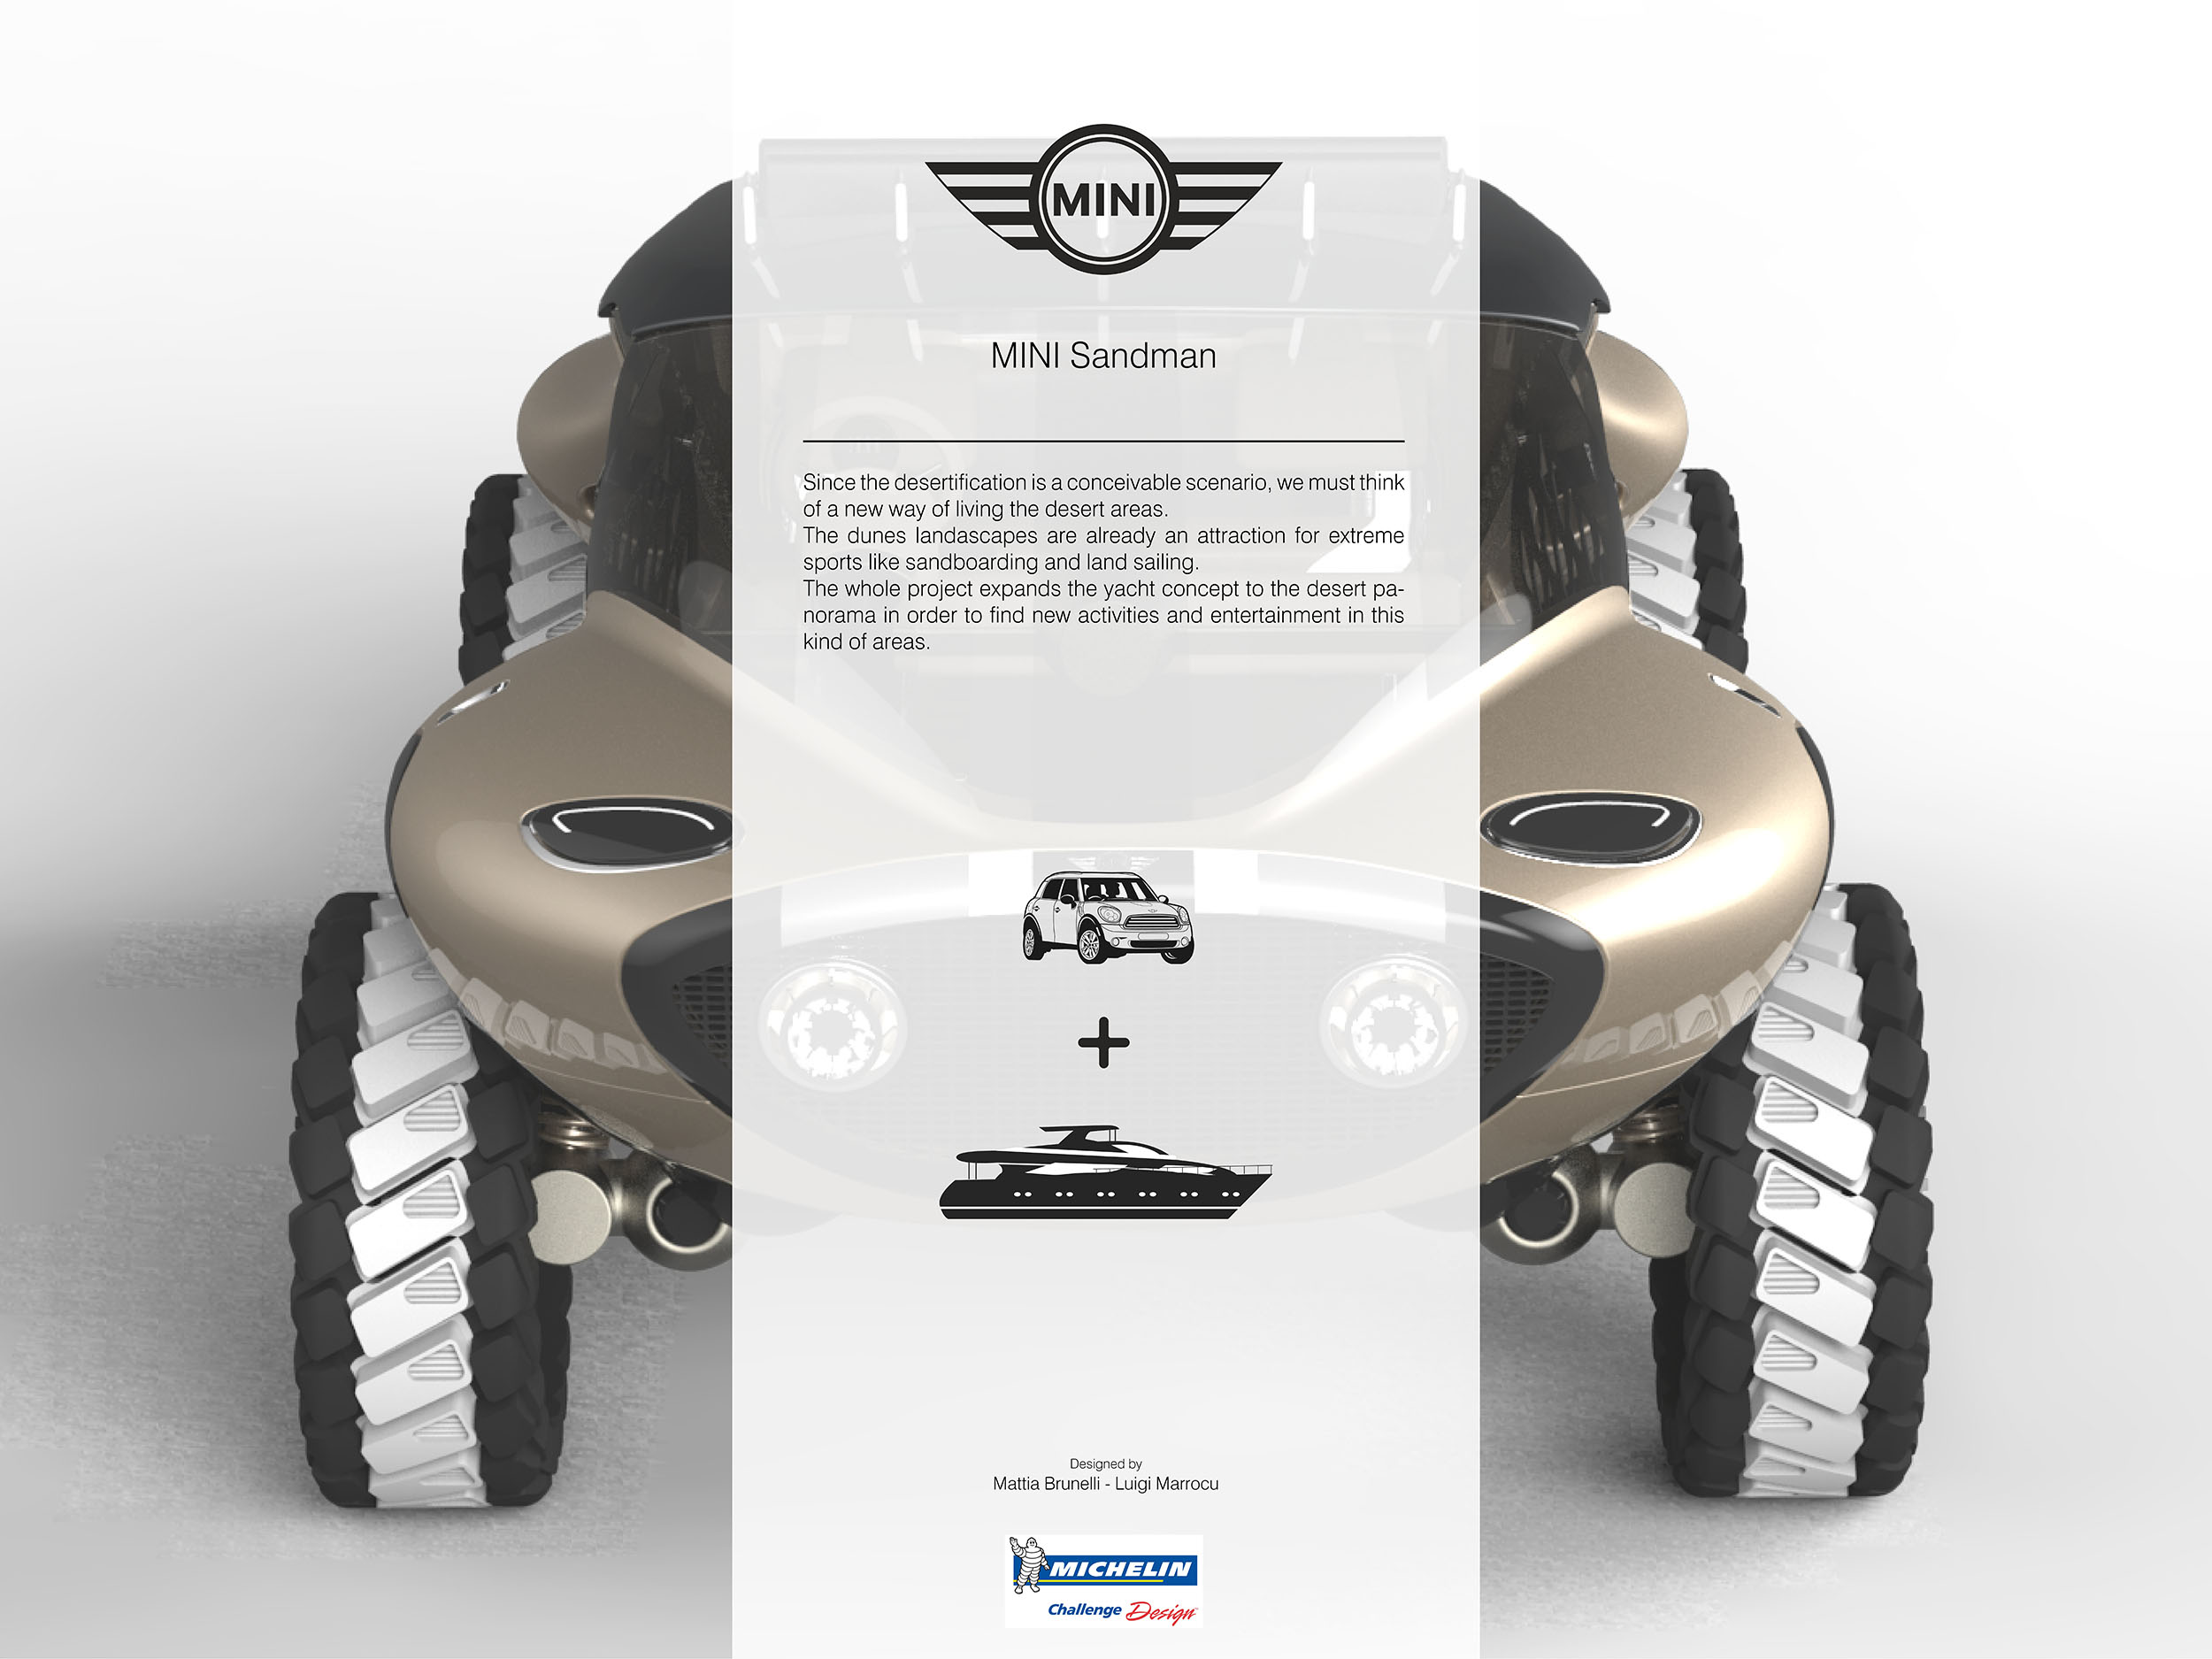 home product design.  Michelin Challenge Design Advancing Mobility Through